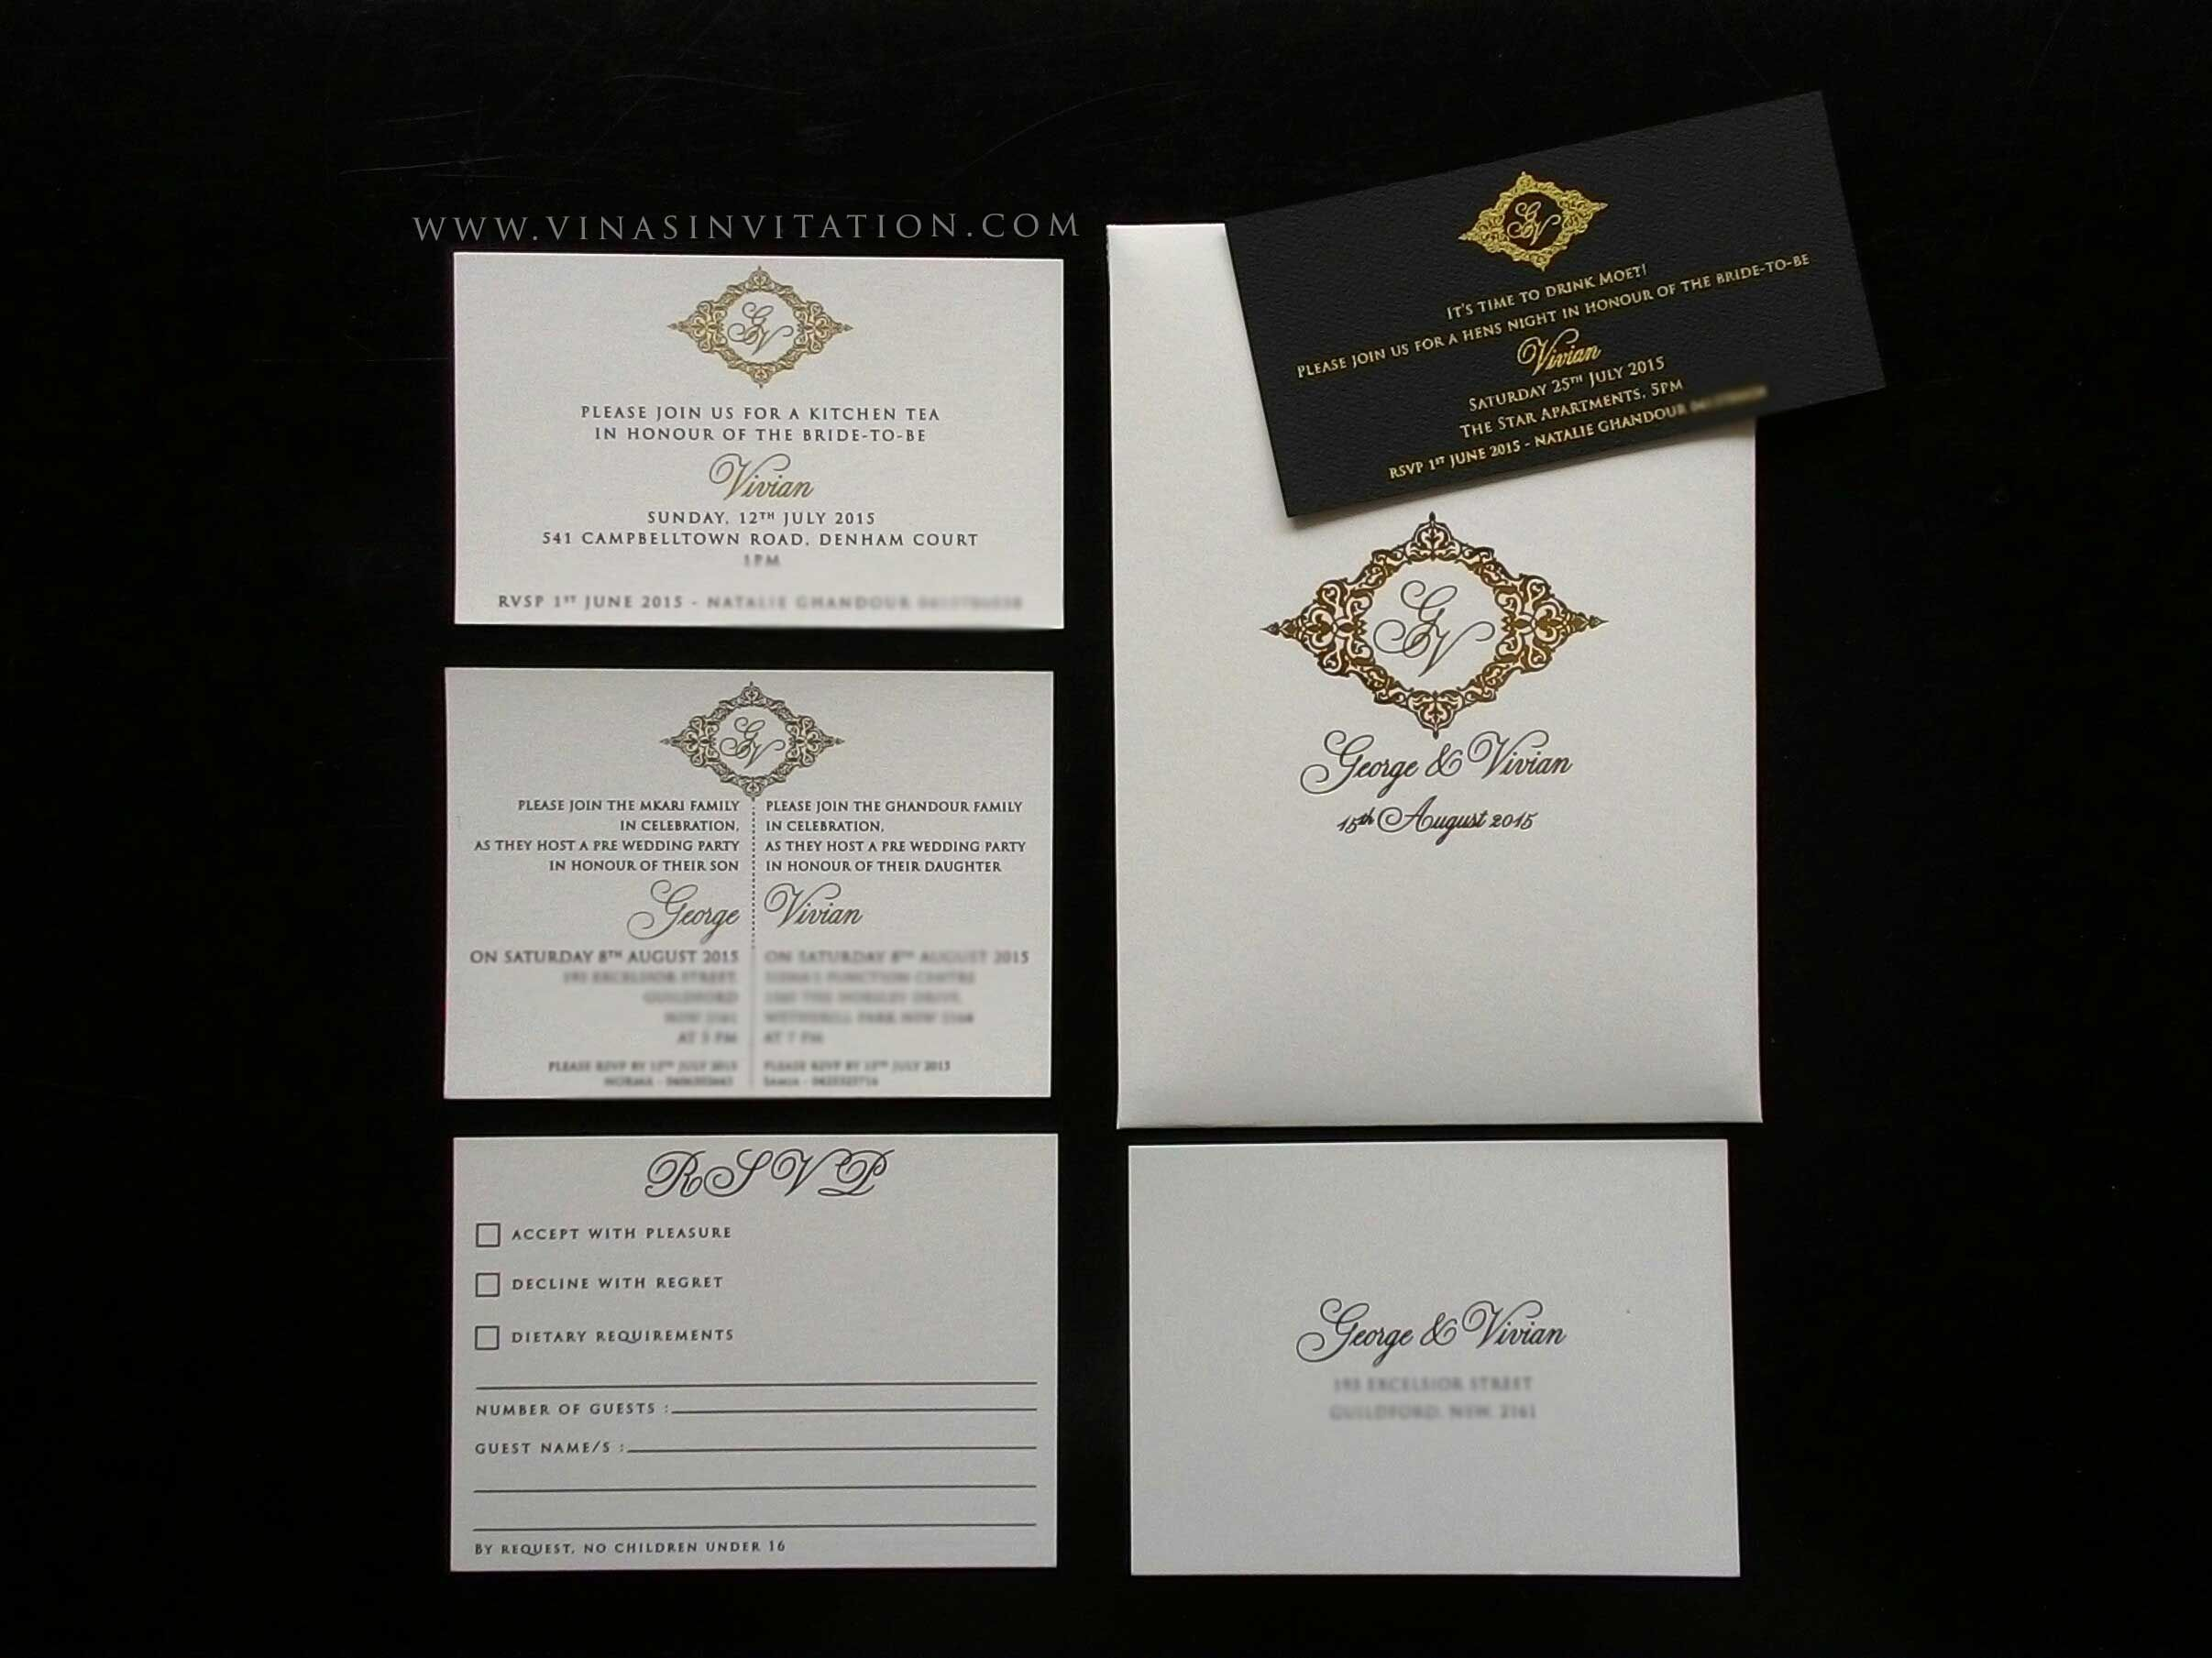 Vinas invitation. vinas sydney. australian wedding invitation ...